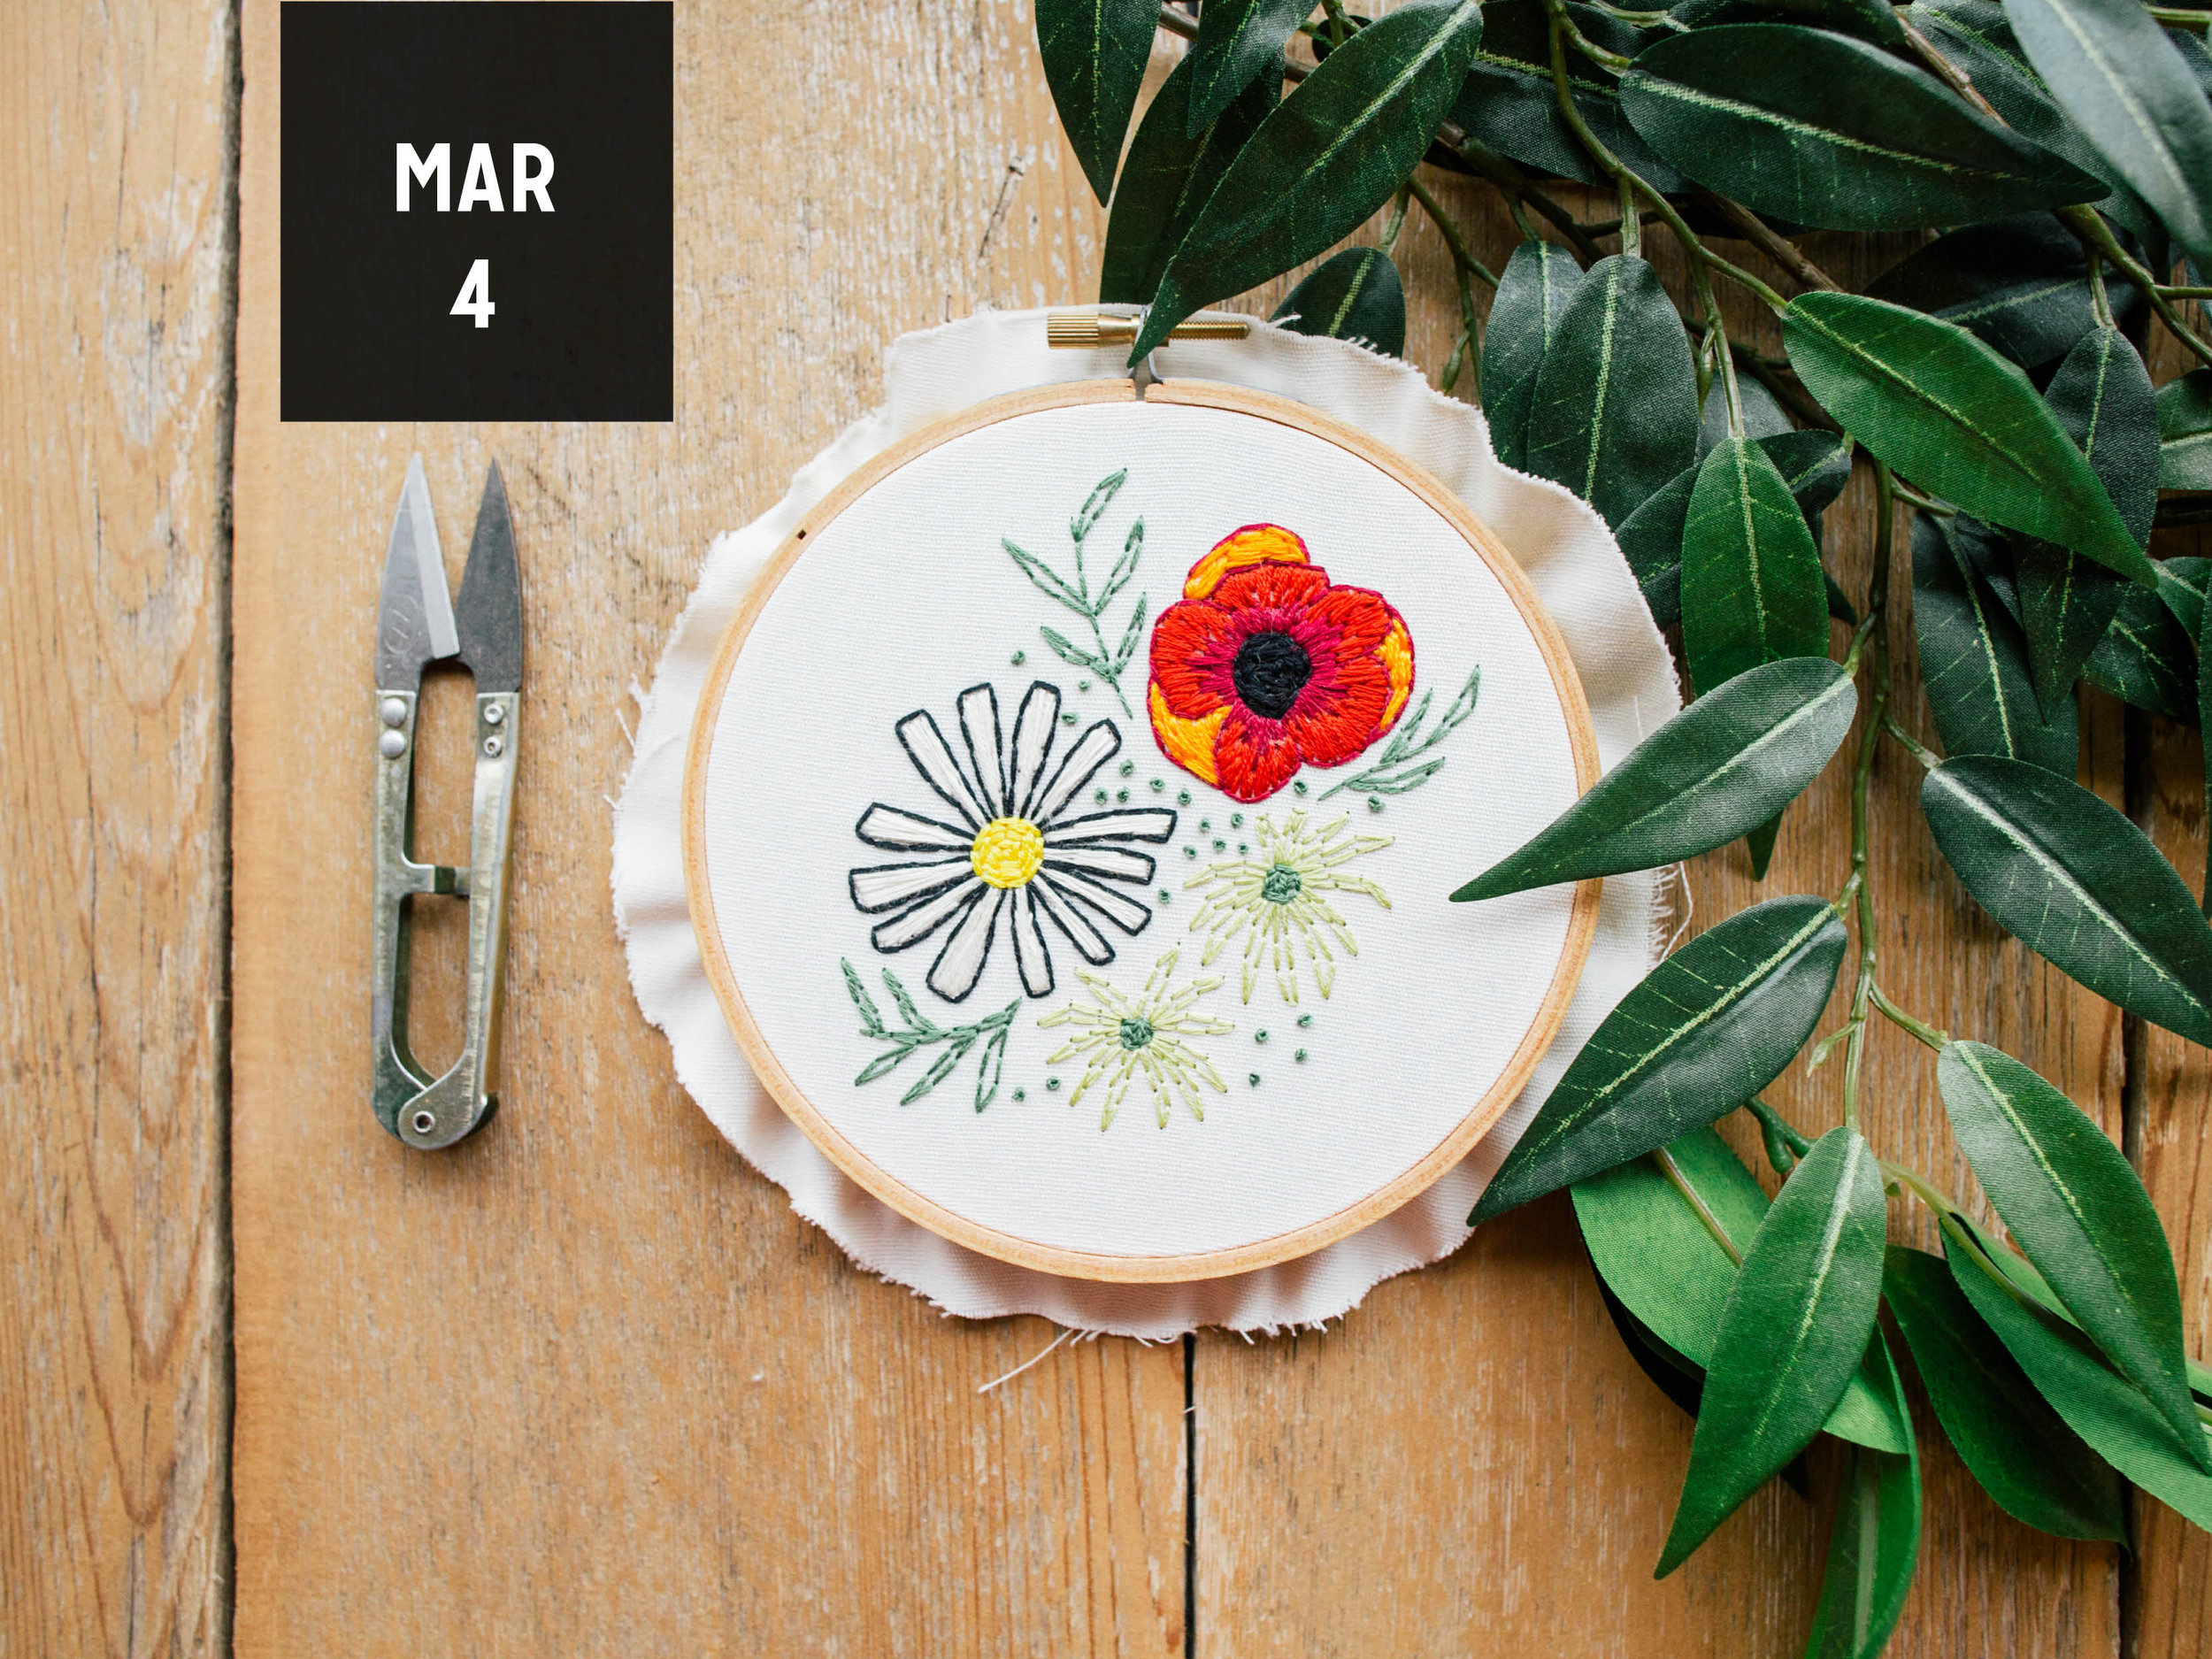 Paper Craft Pantry Hand Embroidery Floral Bouquets Workshop with Allie Biddle